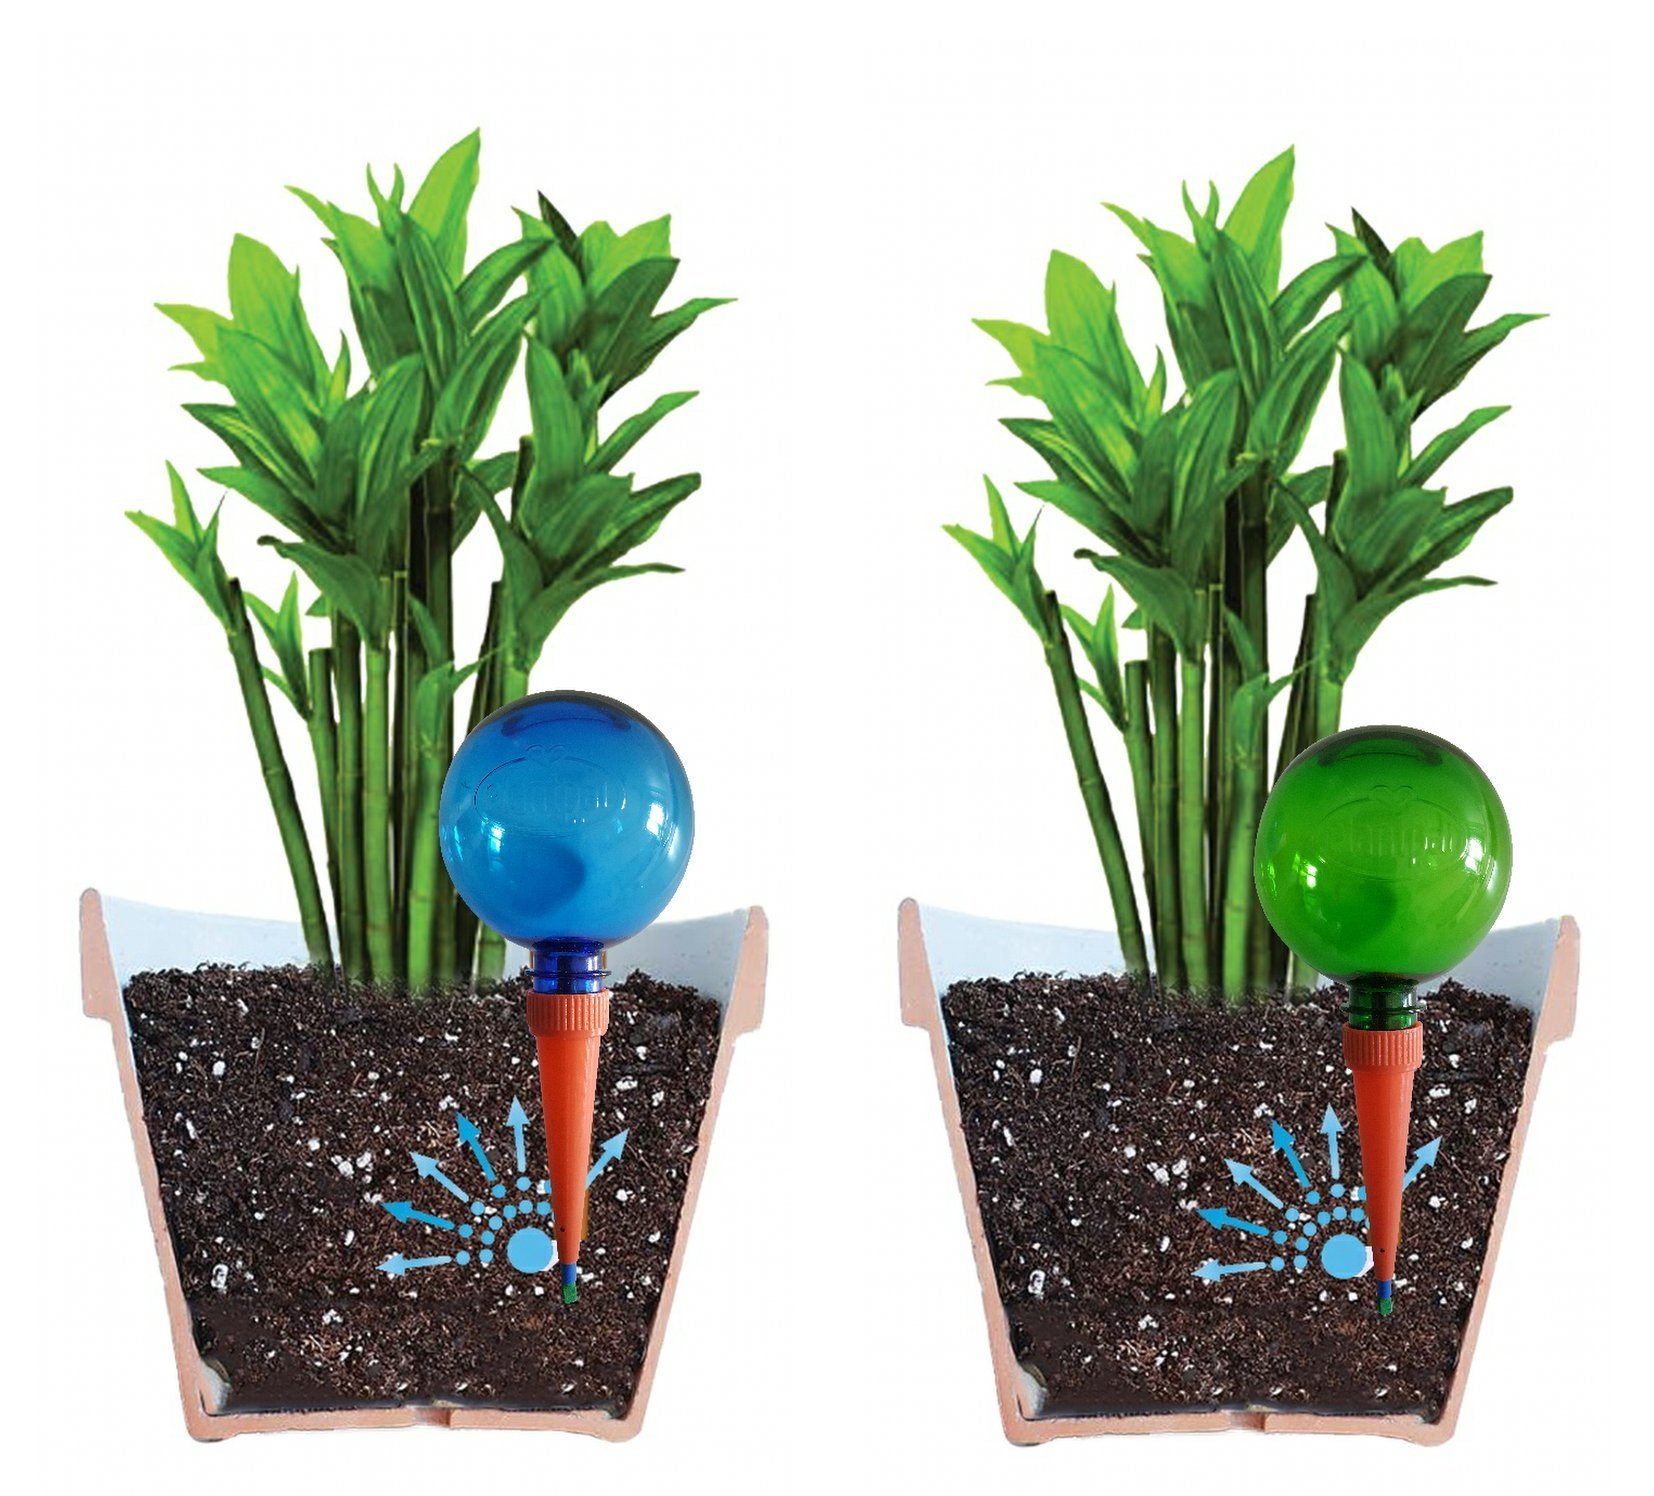 Plantpal Pack of 2 Large Blue & Green Watering Globes, Plant Watering Stakes, Automatic Indoor Potted Plant Watering, Vacation Watering System. Use in 7-10 Inch Indoor Plant Pots. by Plantpal